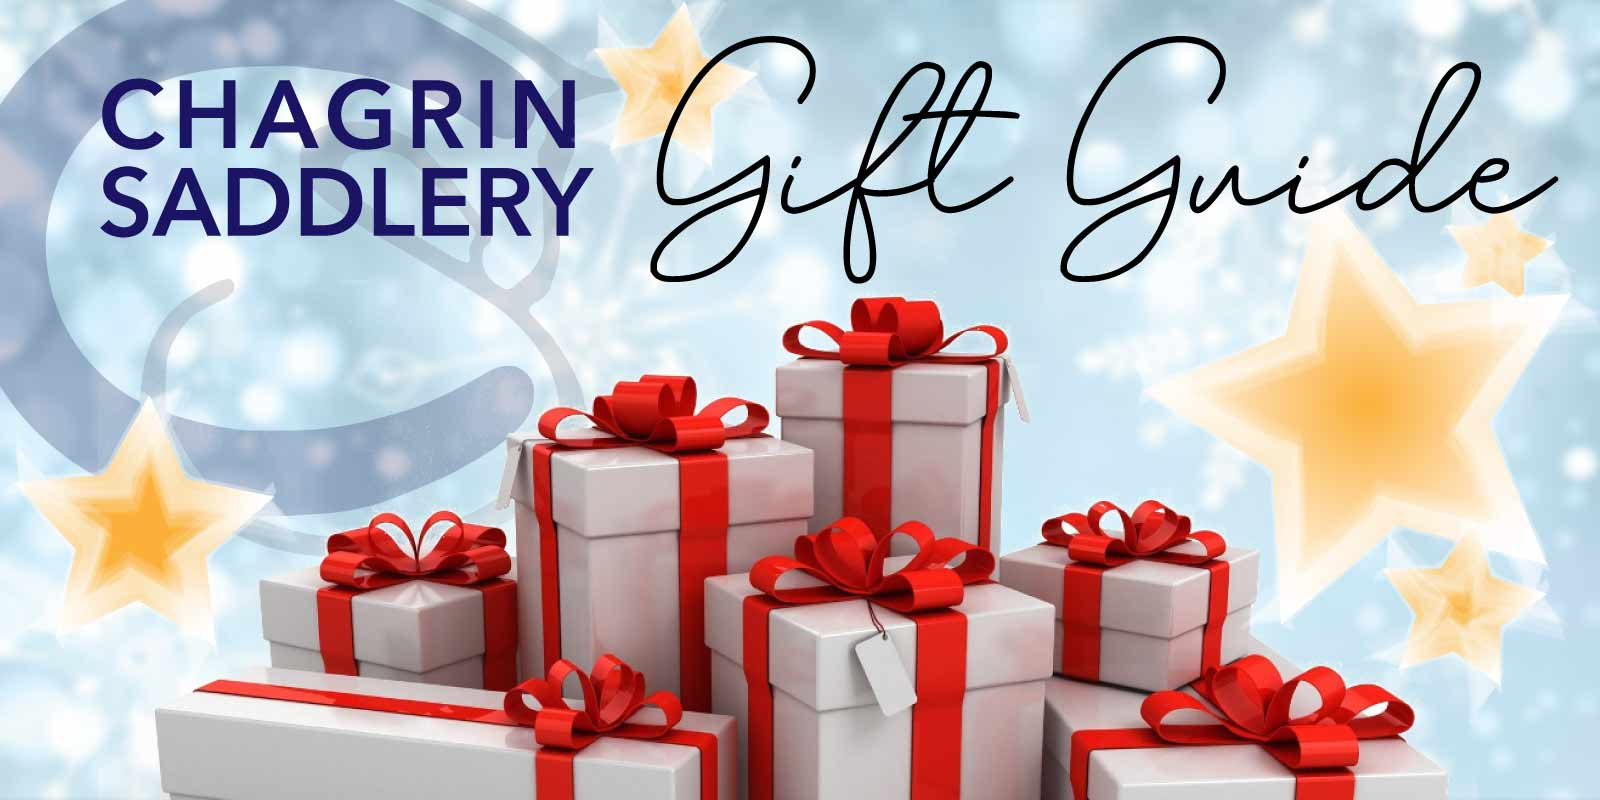 Chagrin Saddlery Gift Guide 2019